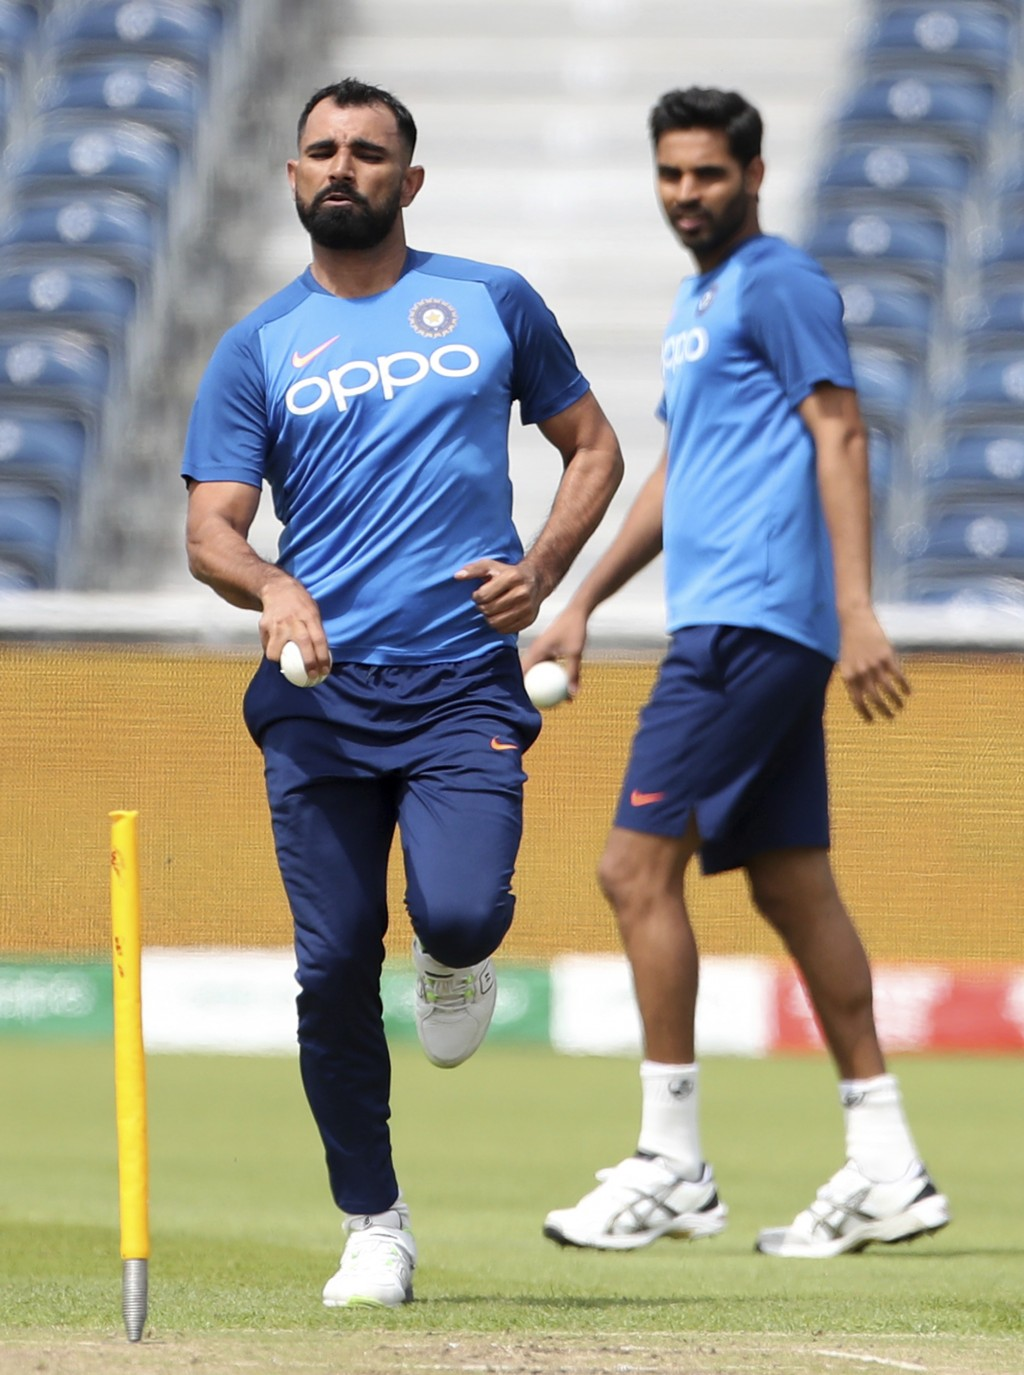 India's Bhuvneshwar Kumar, right, watches fellow bowler Mohammed Shami bowl during a training session ahead of their Cricket World Cup match against W...